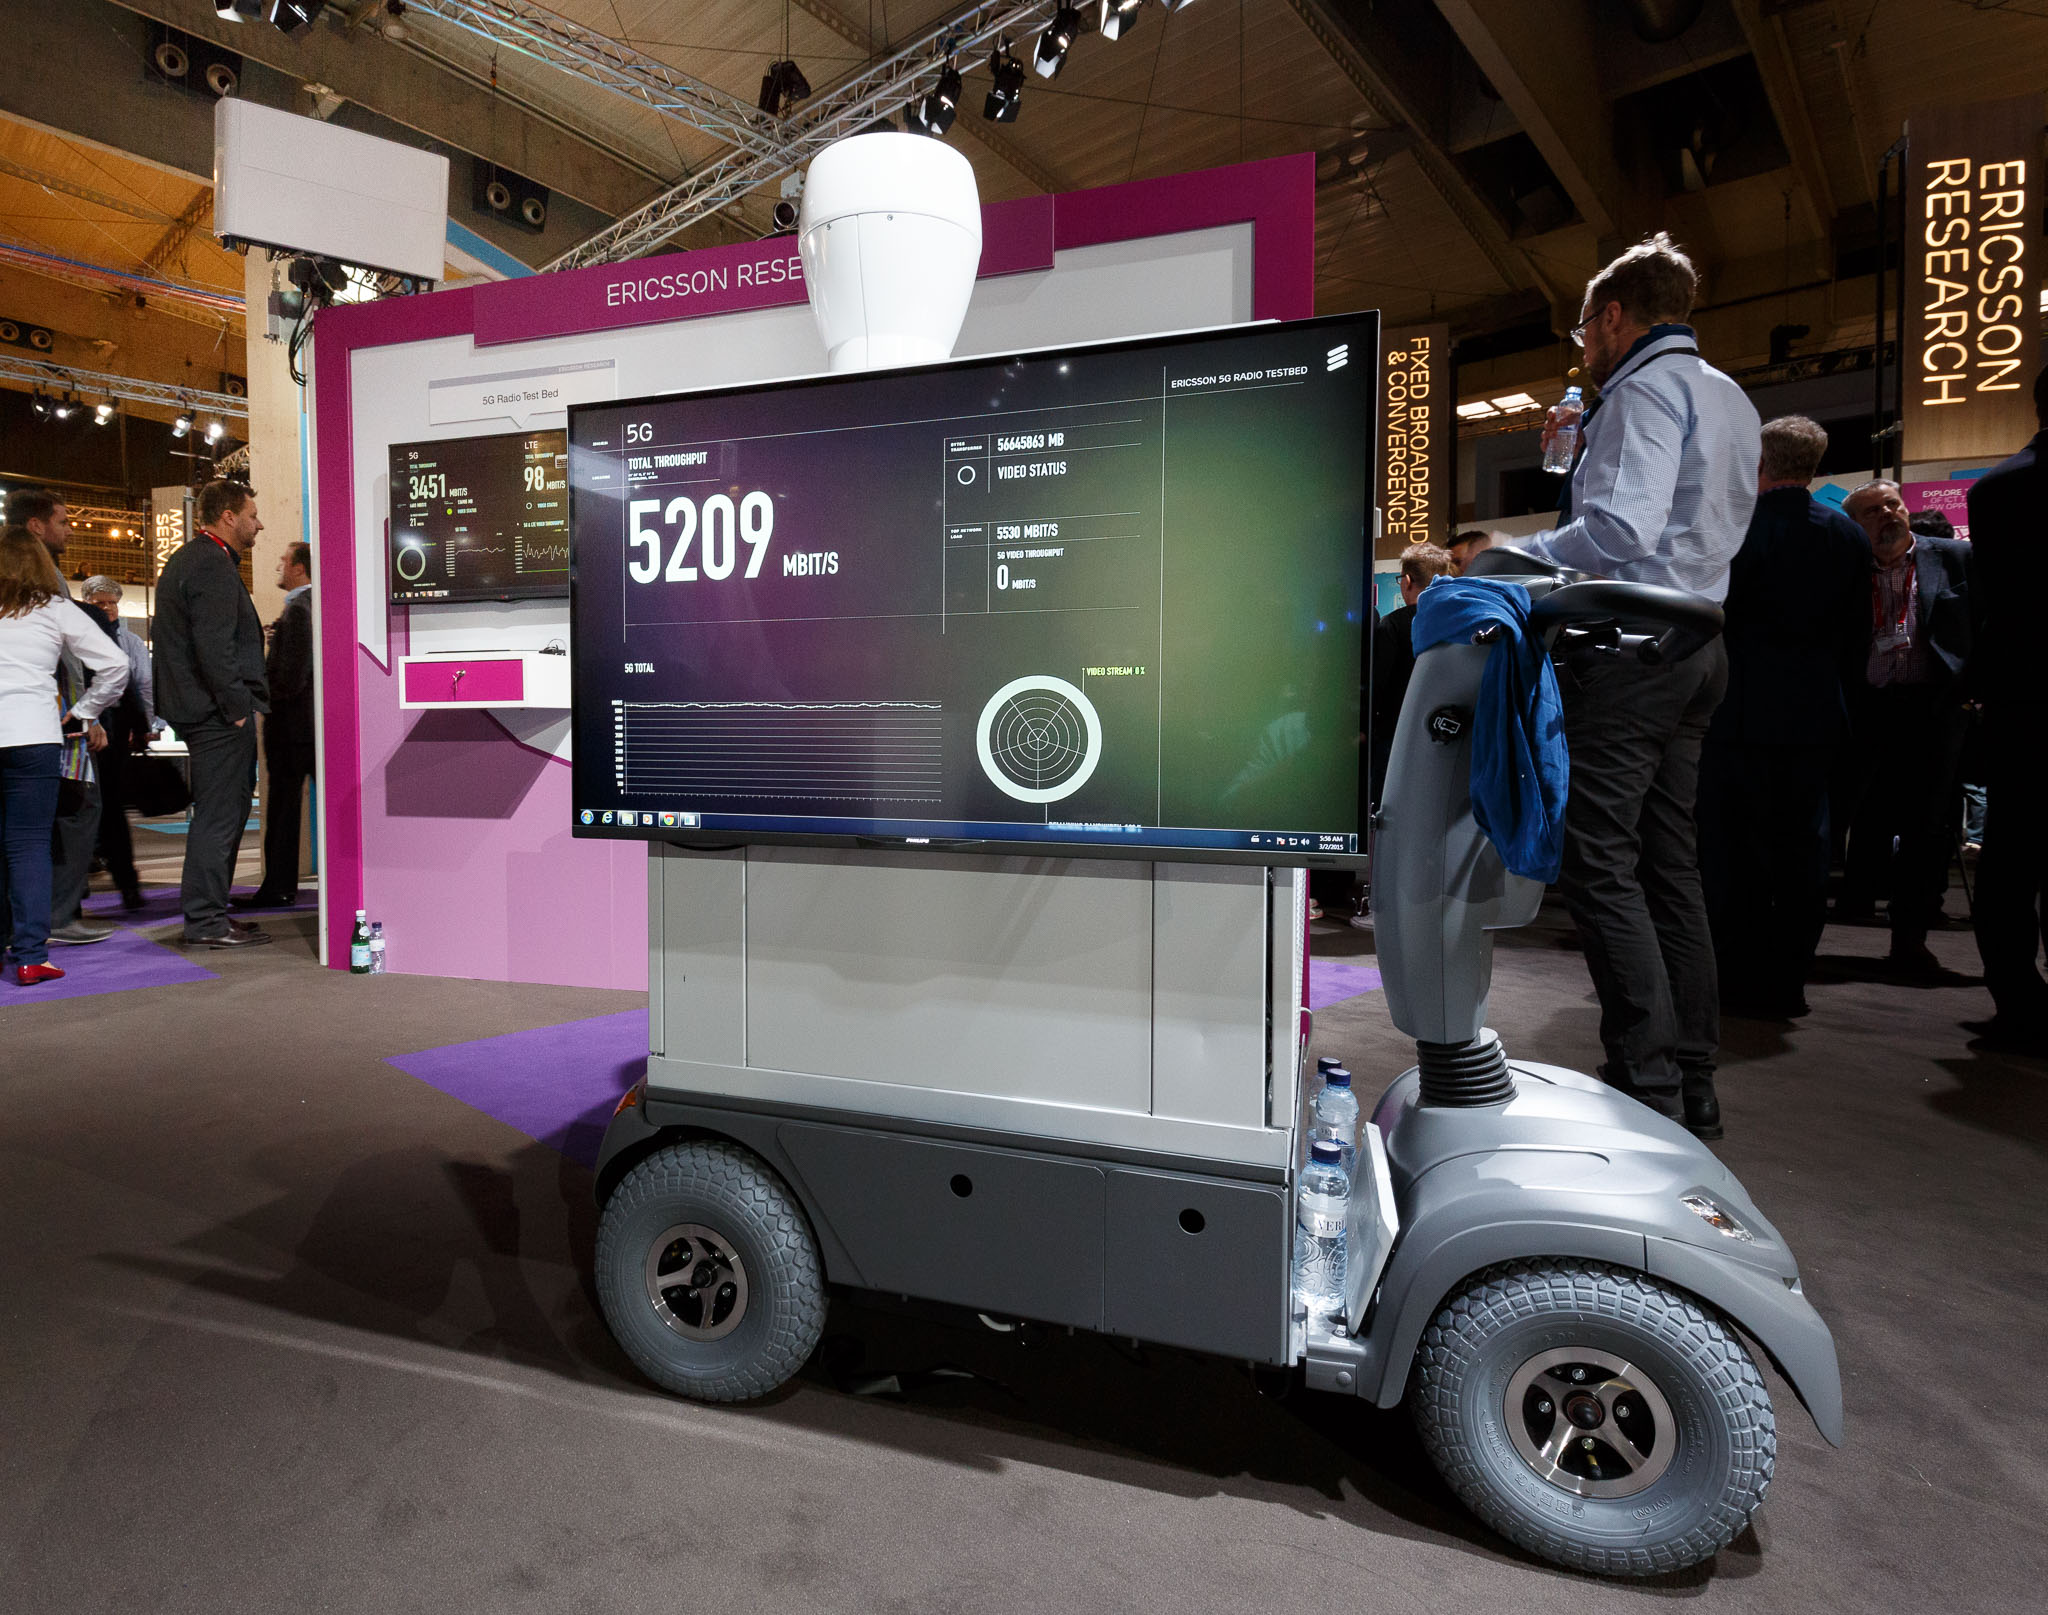 Ericsson showed a wireless radio link with prototype 5G networking technology at Mobile World Congress. The equipment could sustain data transfer rates of 5.8Gbps between the base station antenna in the upper left and the receiver on the cart.